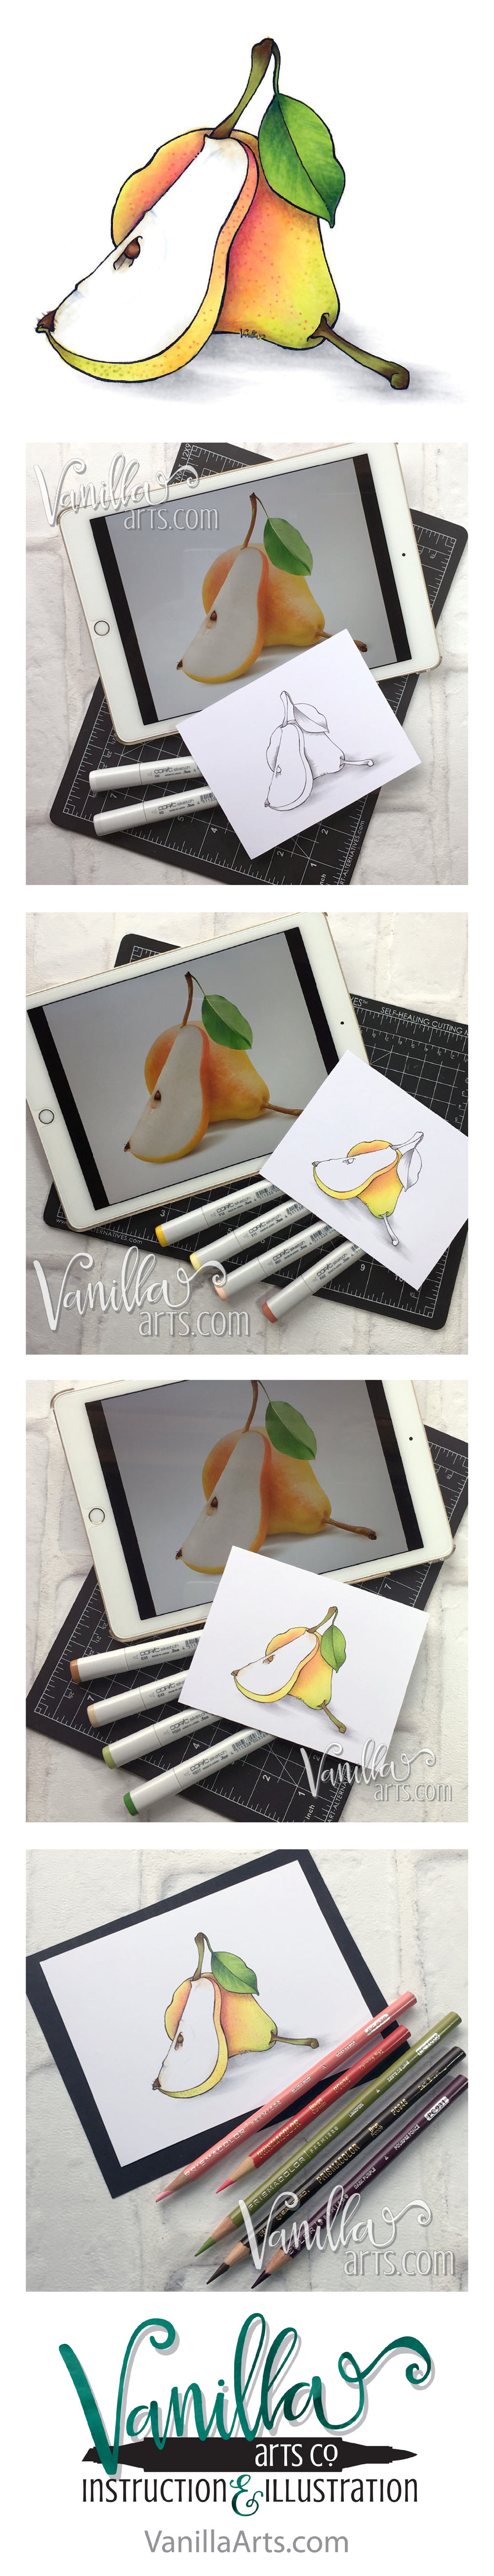 "Beginner Online Course- Marker Painting Foundations, ""Sliced Pear"". Week 6 lesson on layering for depth with Copic Markers. 